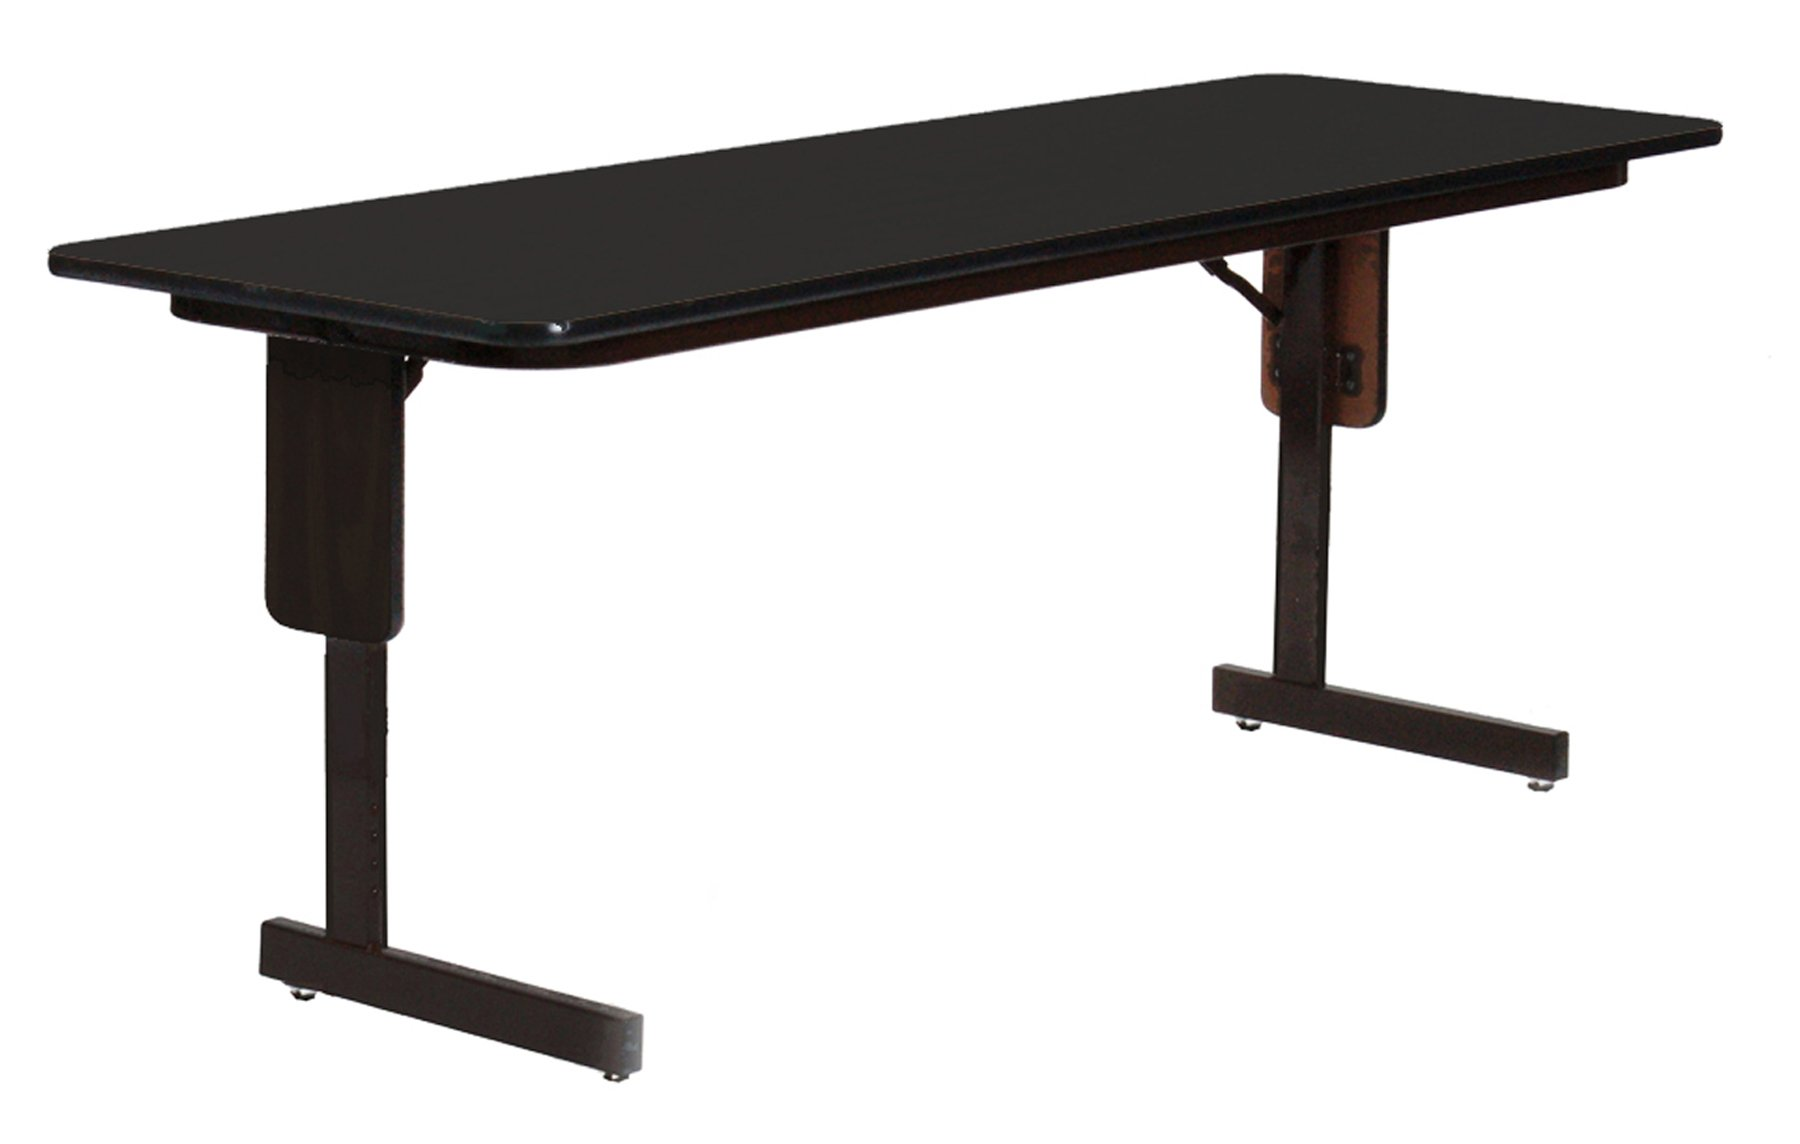 Correll SP2472PX-07 High Pressure Laminate Classroom, Training or Seminar Table with Folding Panel Leg  , Rectangular, 24''x72'' , Seats 3, Black Granite